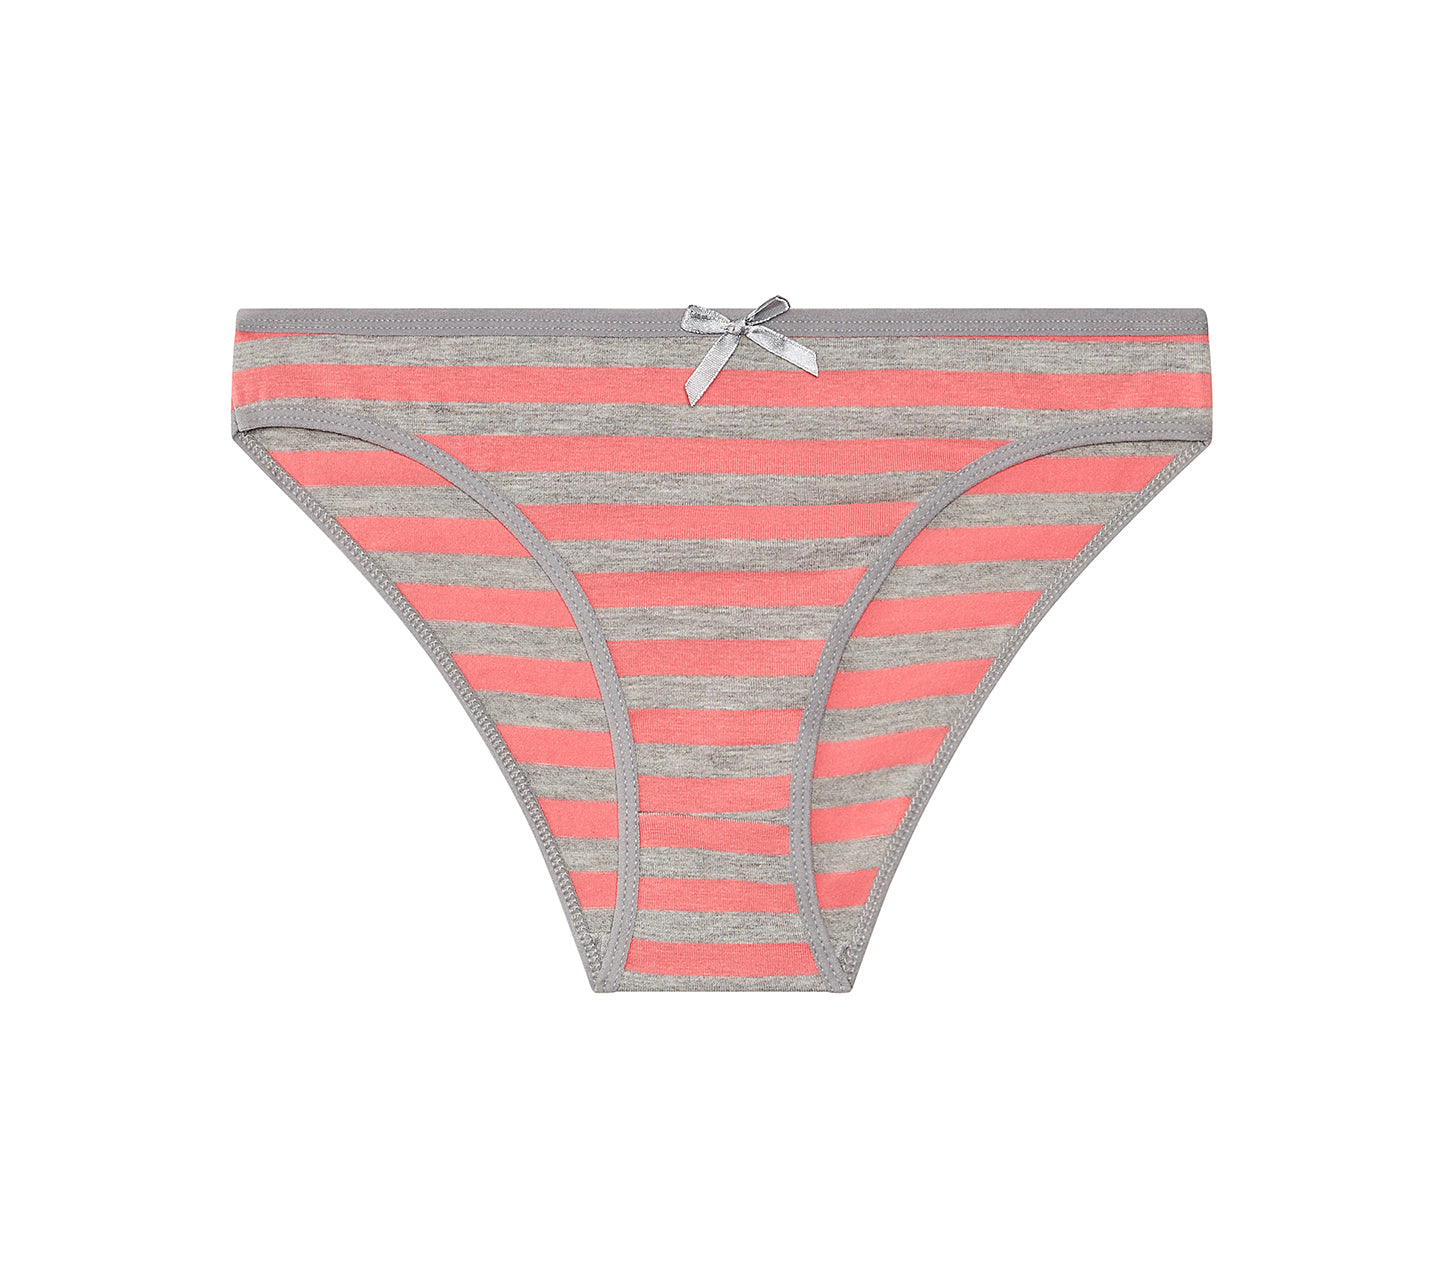 Nabtos Women's Cotton Underwear Bikini Stripes Panties (Pack of 6)